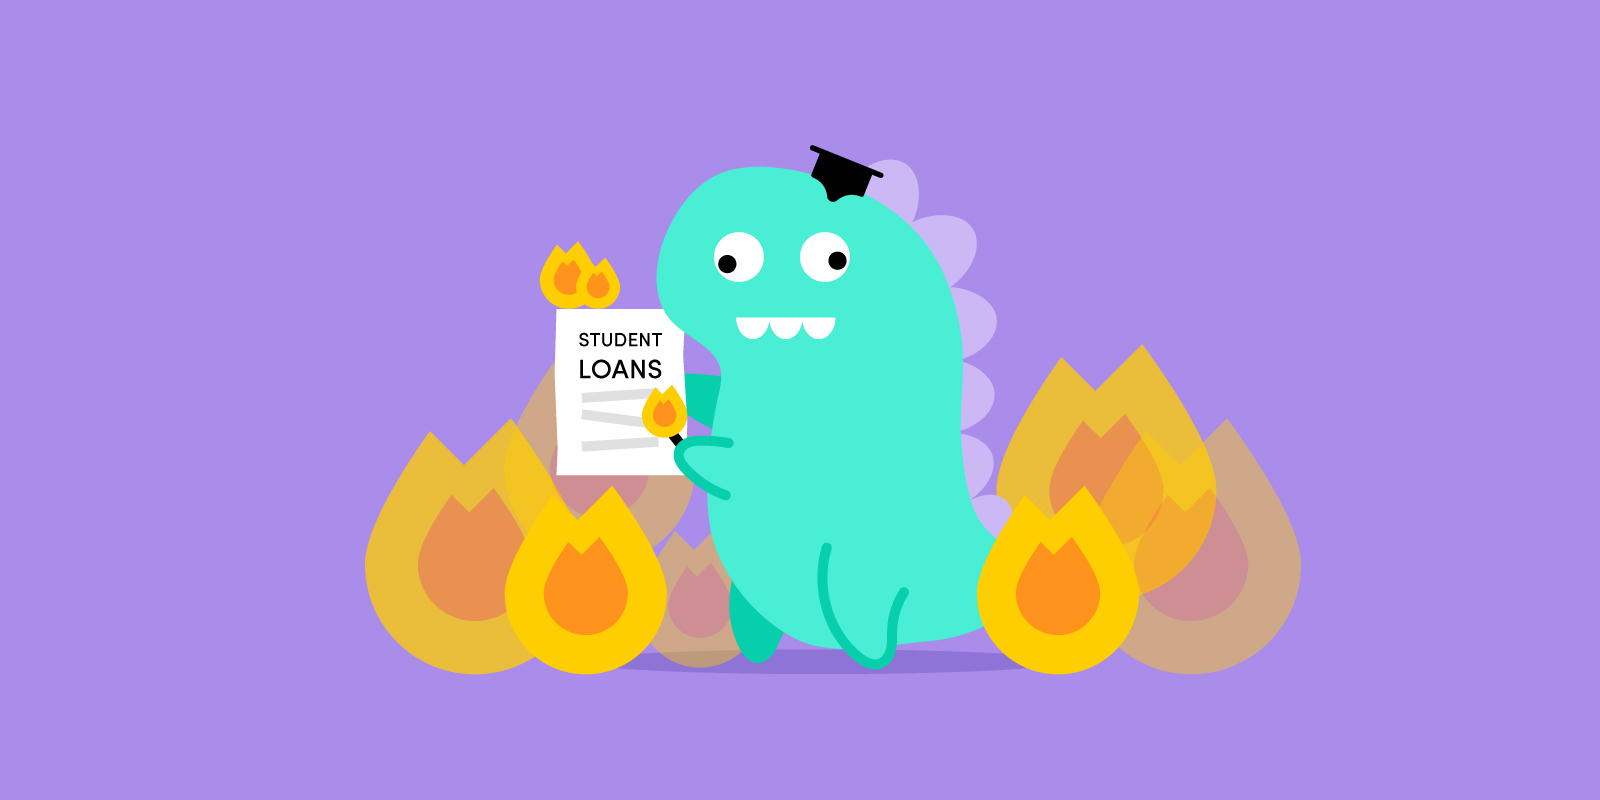 Burning the student's loan